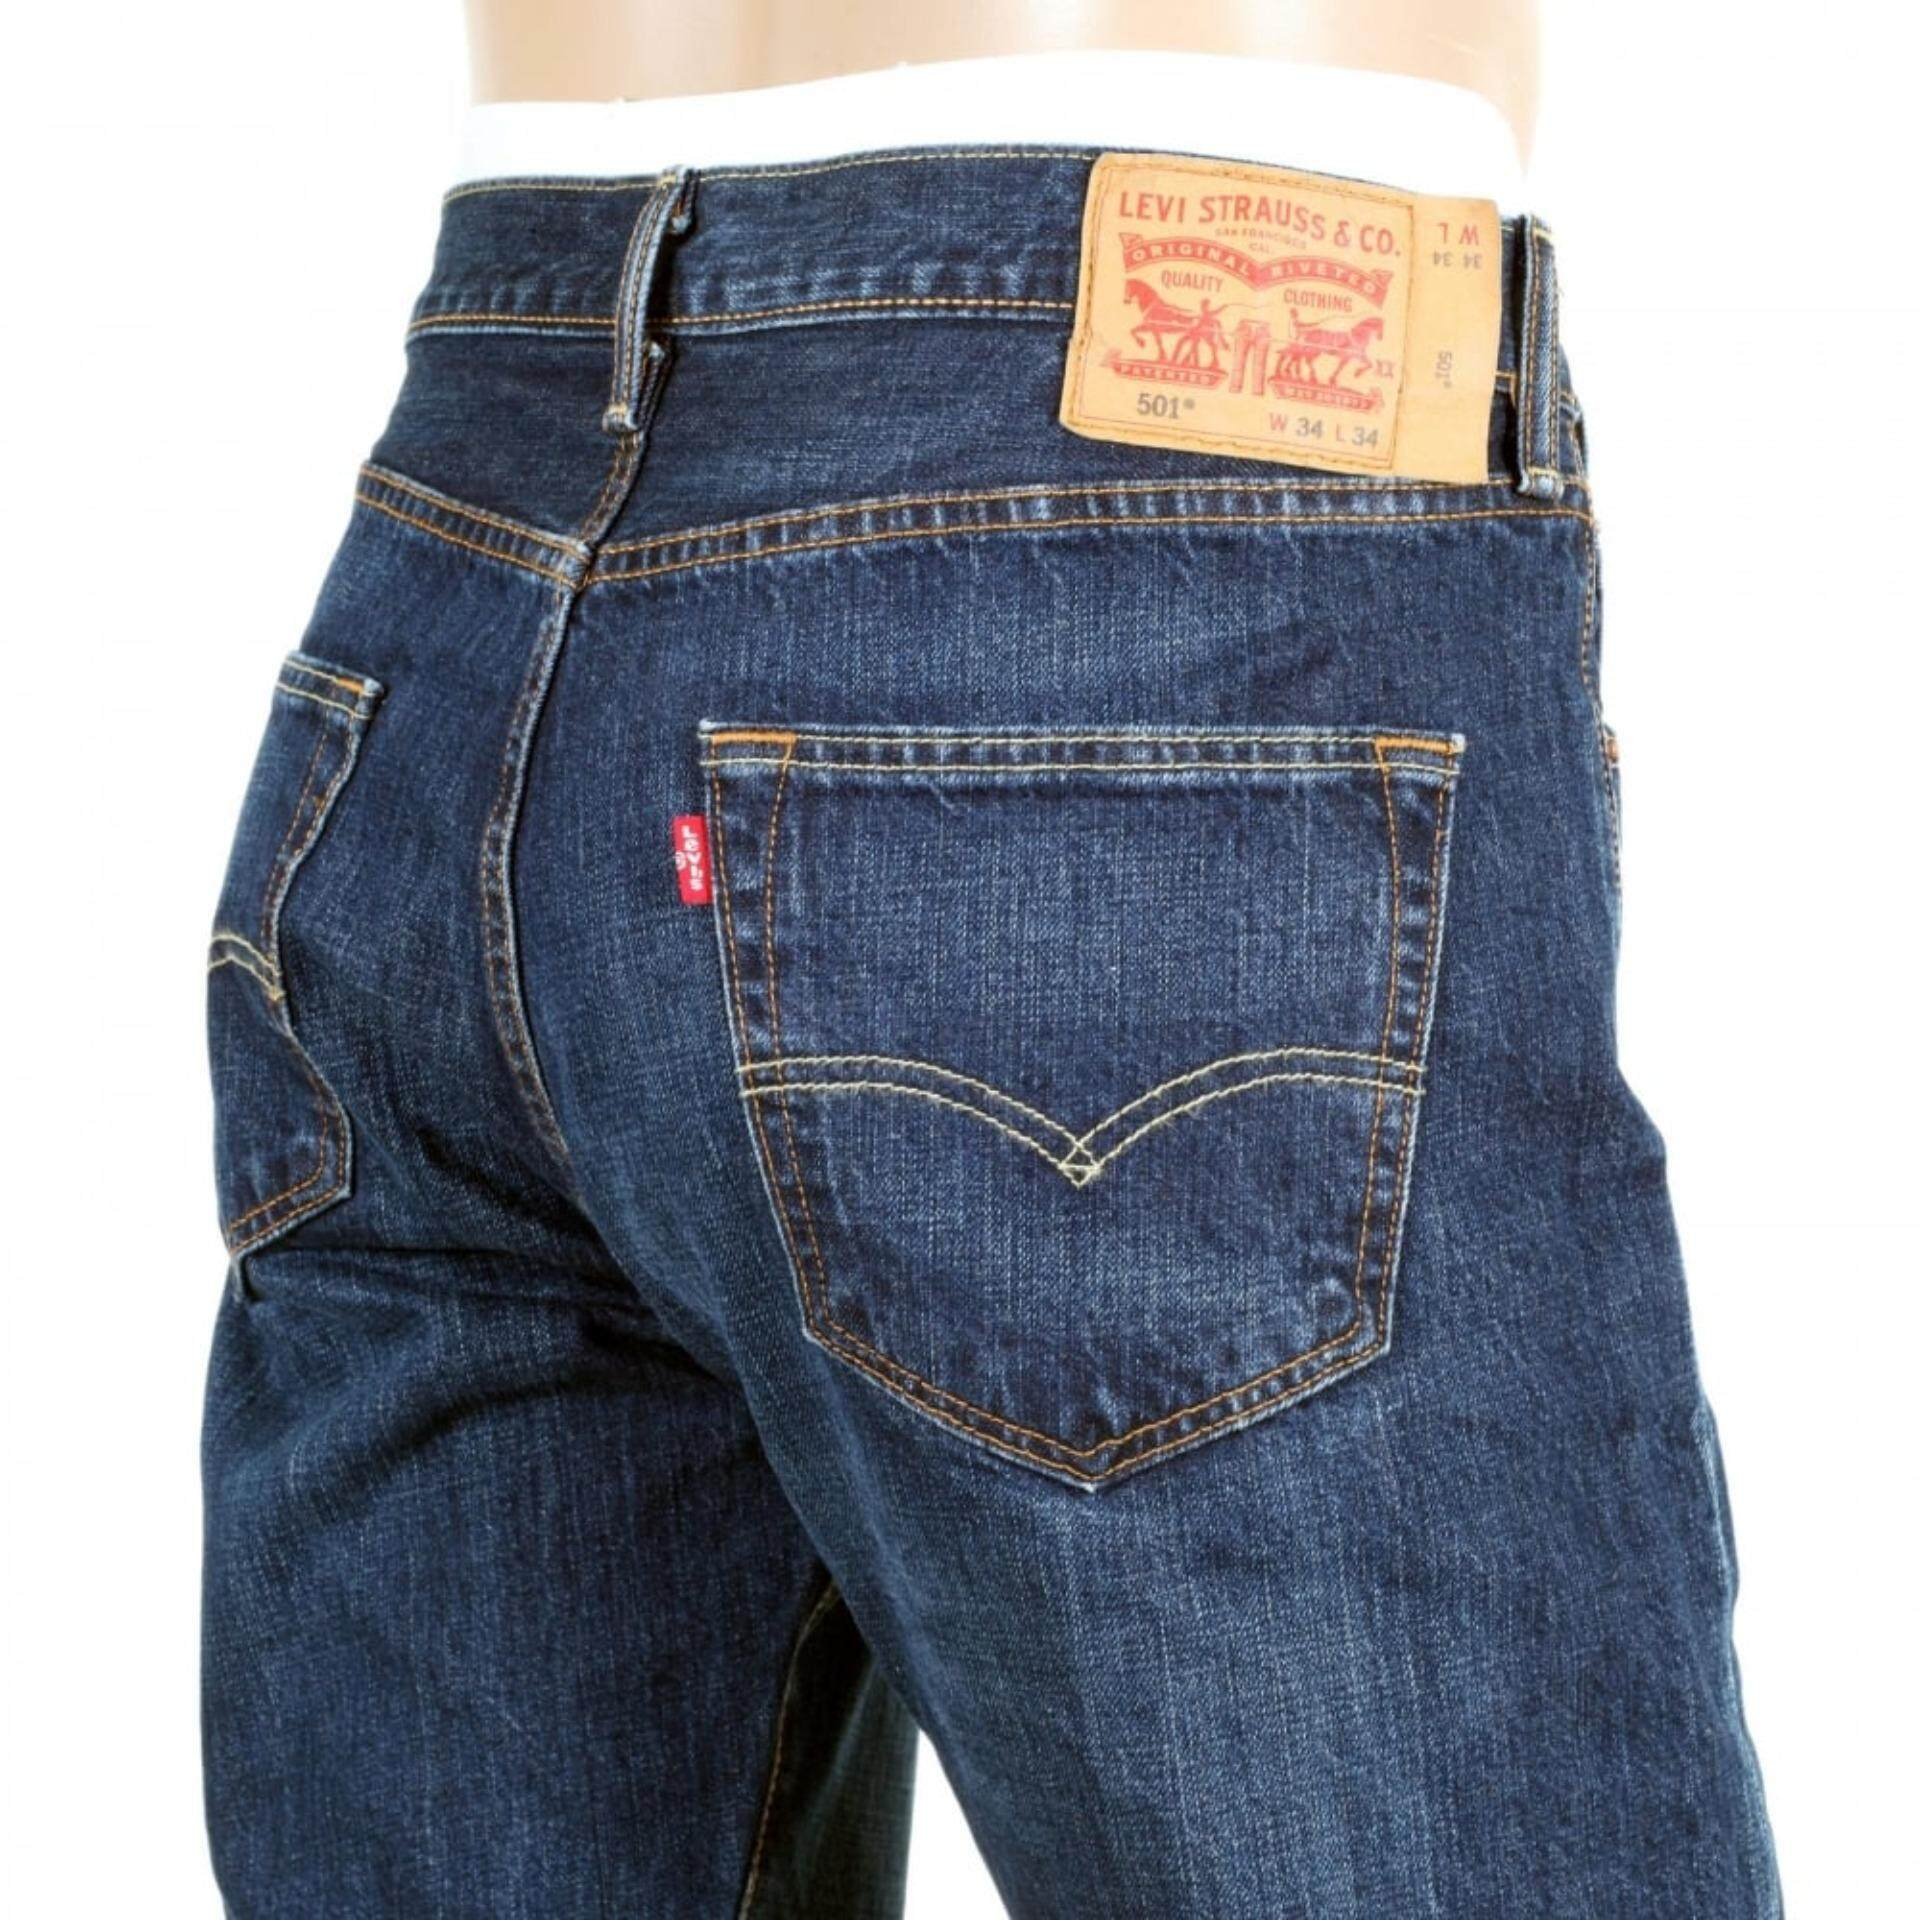 (Levis) MENS DARK BLUE WASHED 501 ORIGINAL FIT IRON STATE JEANS WITH STRAIGHT LEG REGULAR WAIST Rejected Stock On Sale